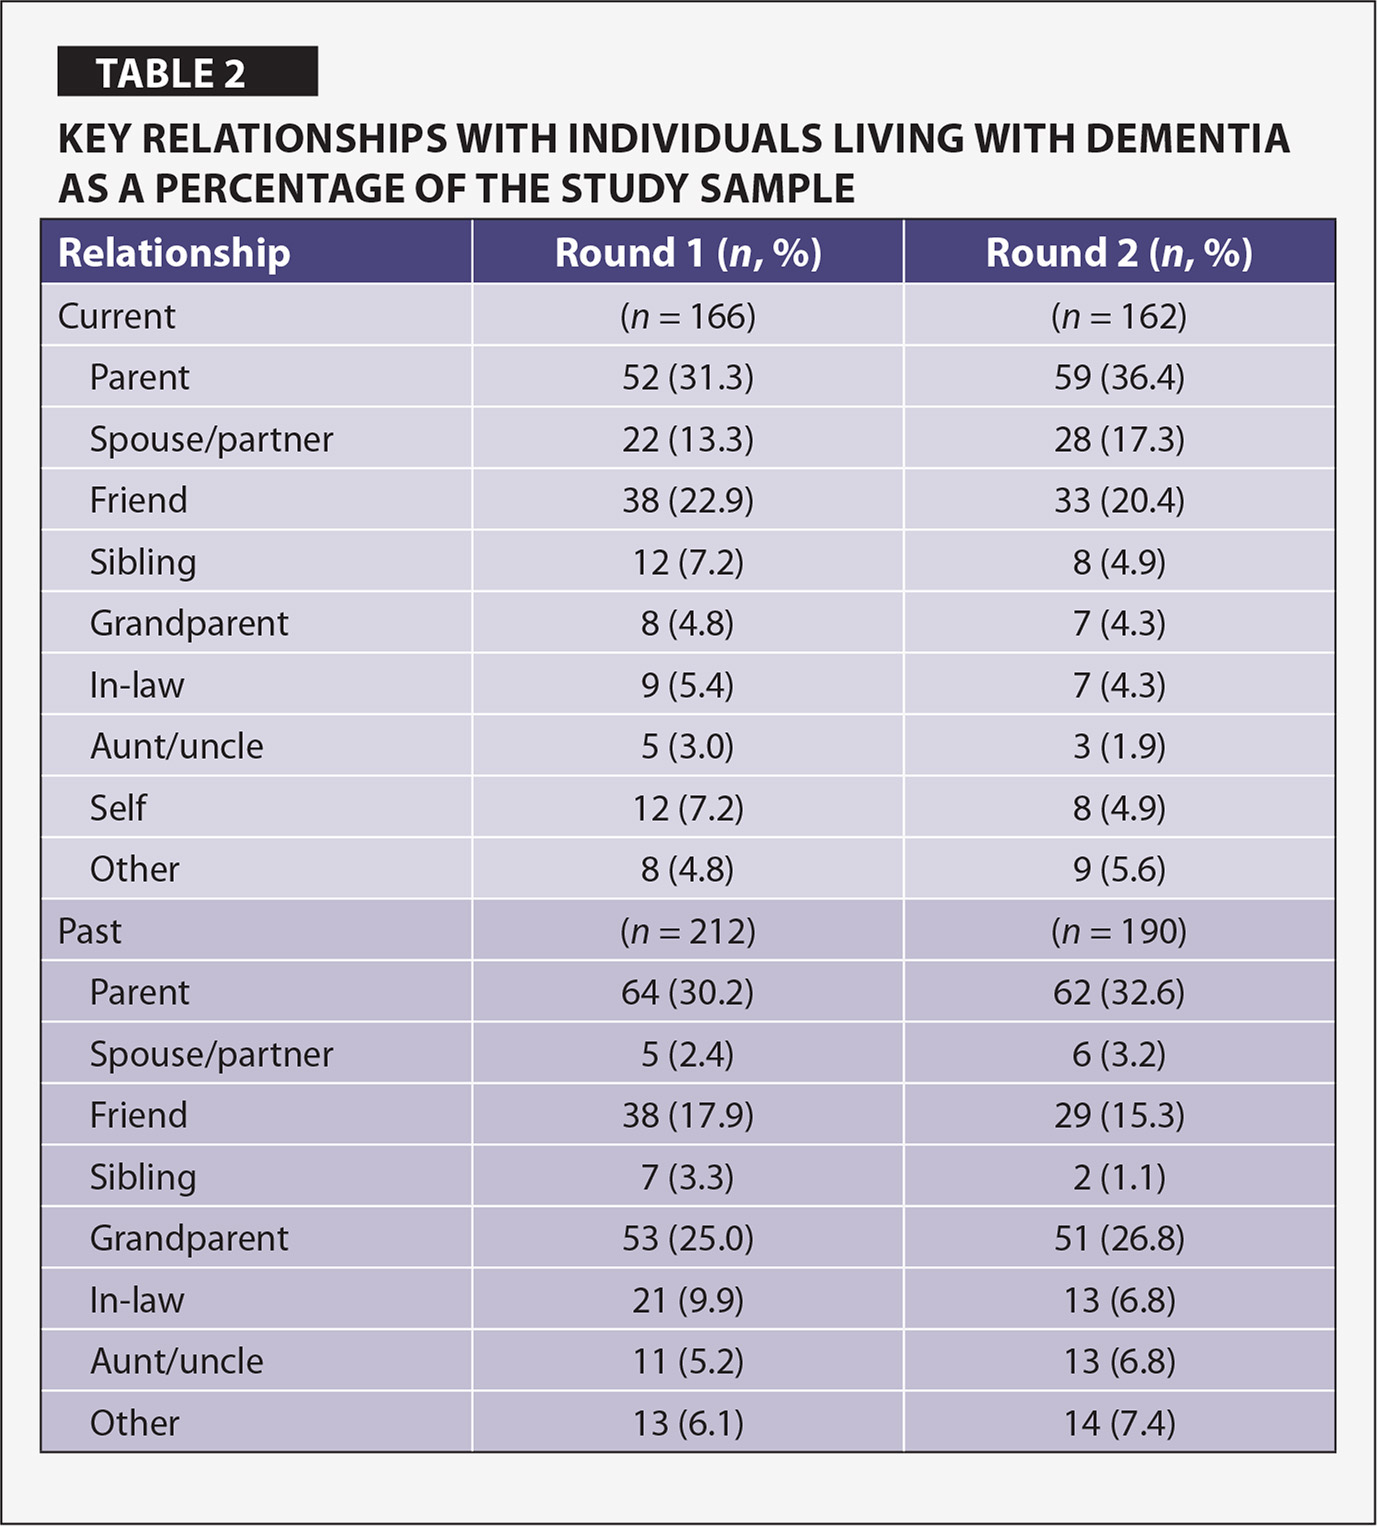 Key Relationships With Individuals Living with Dementia as a Percentage of the Study Sample